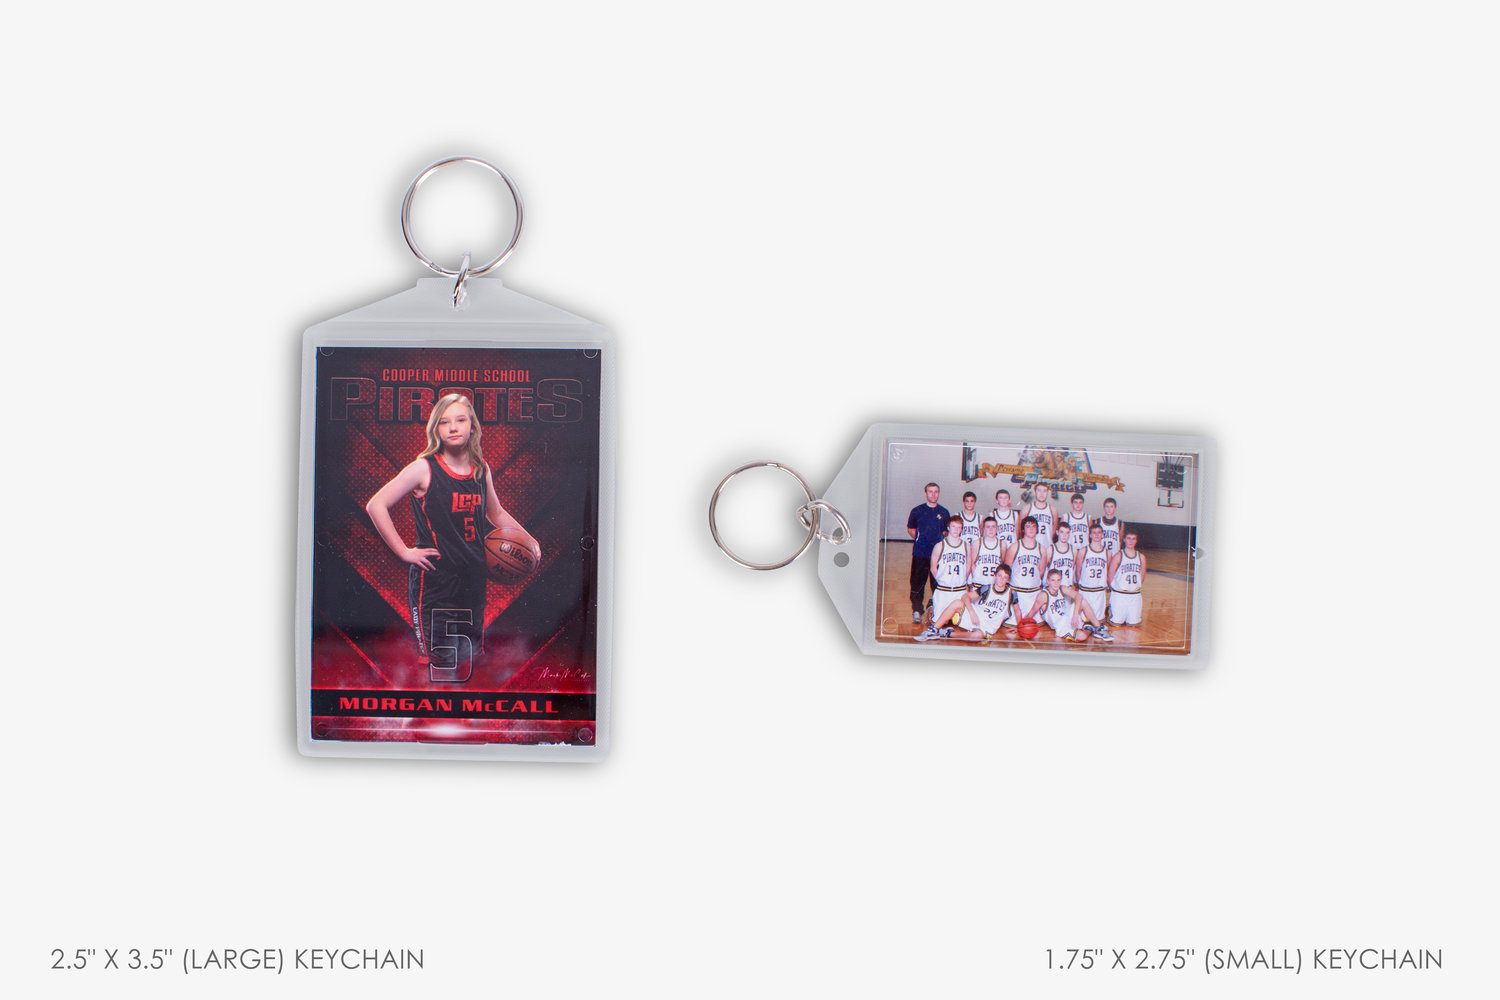 WLV_0863-Sport_Photo_Keychain.jpg